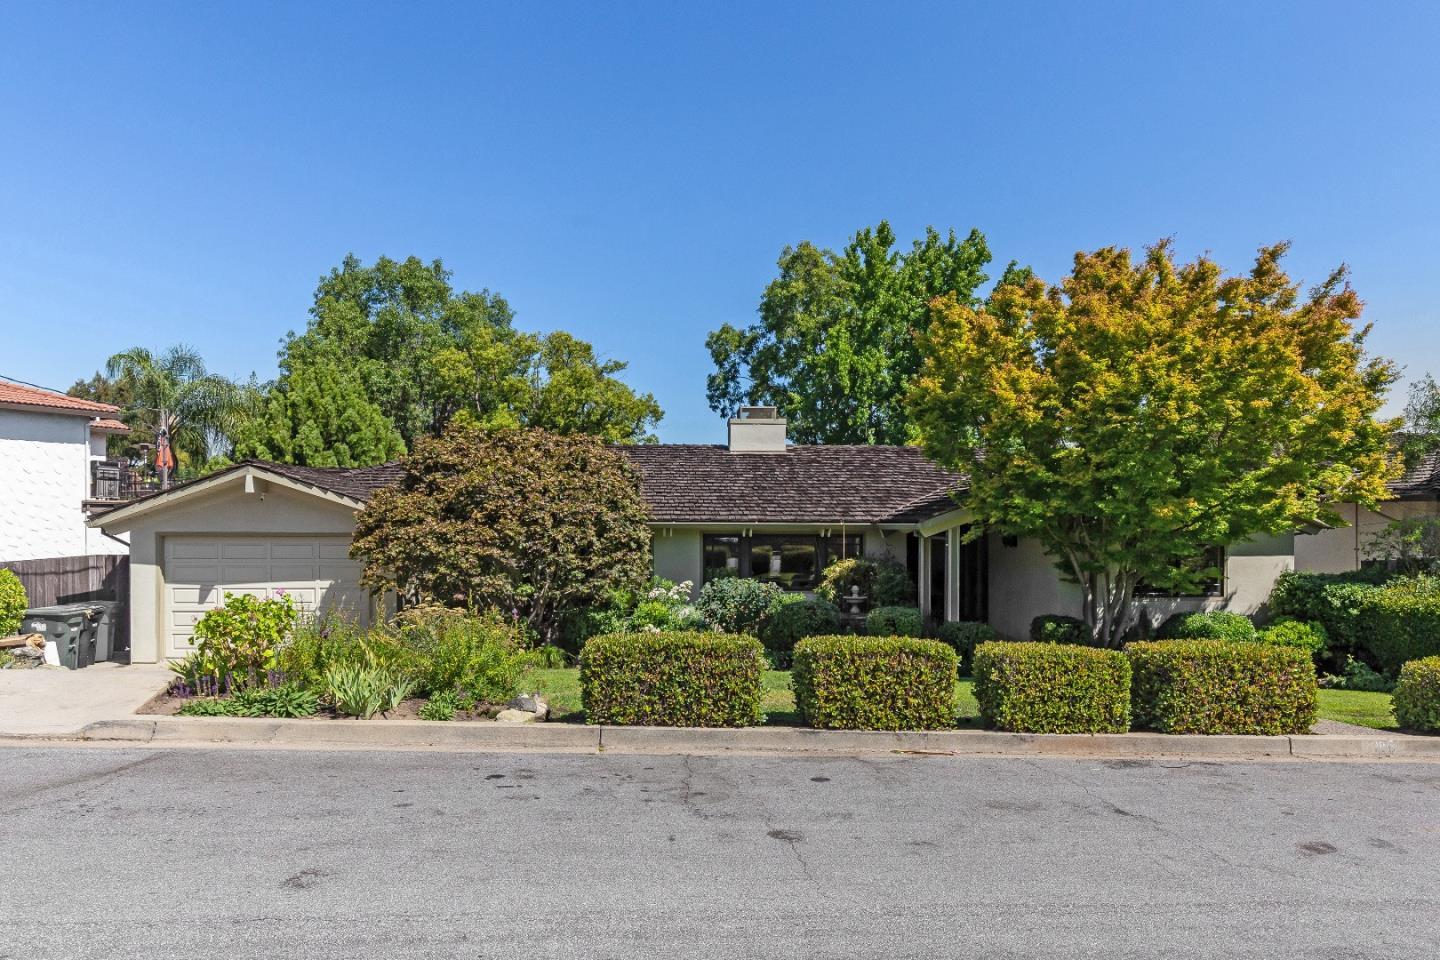 816 MOHICAN WAY, REDWOOD CITY, CA 94062 – DeLeon Realty